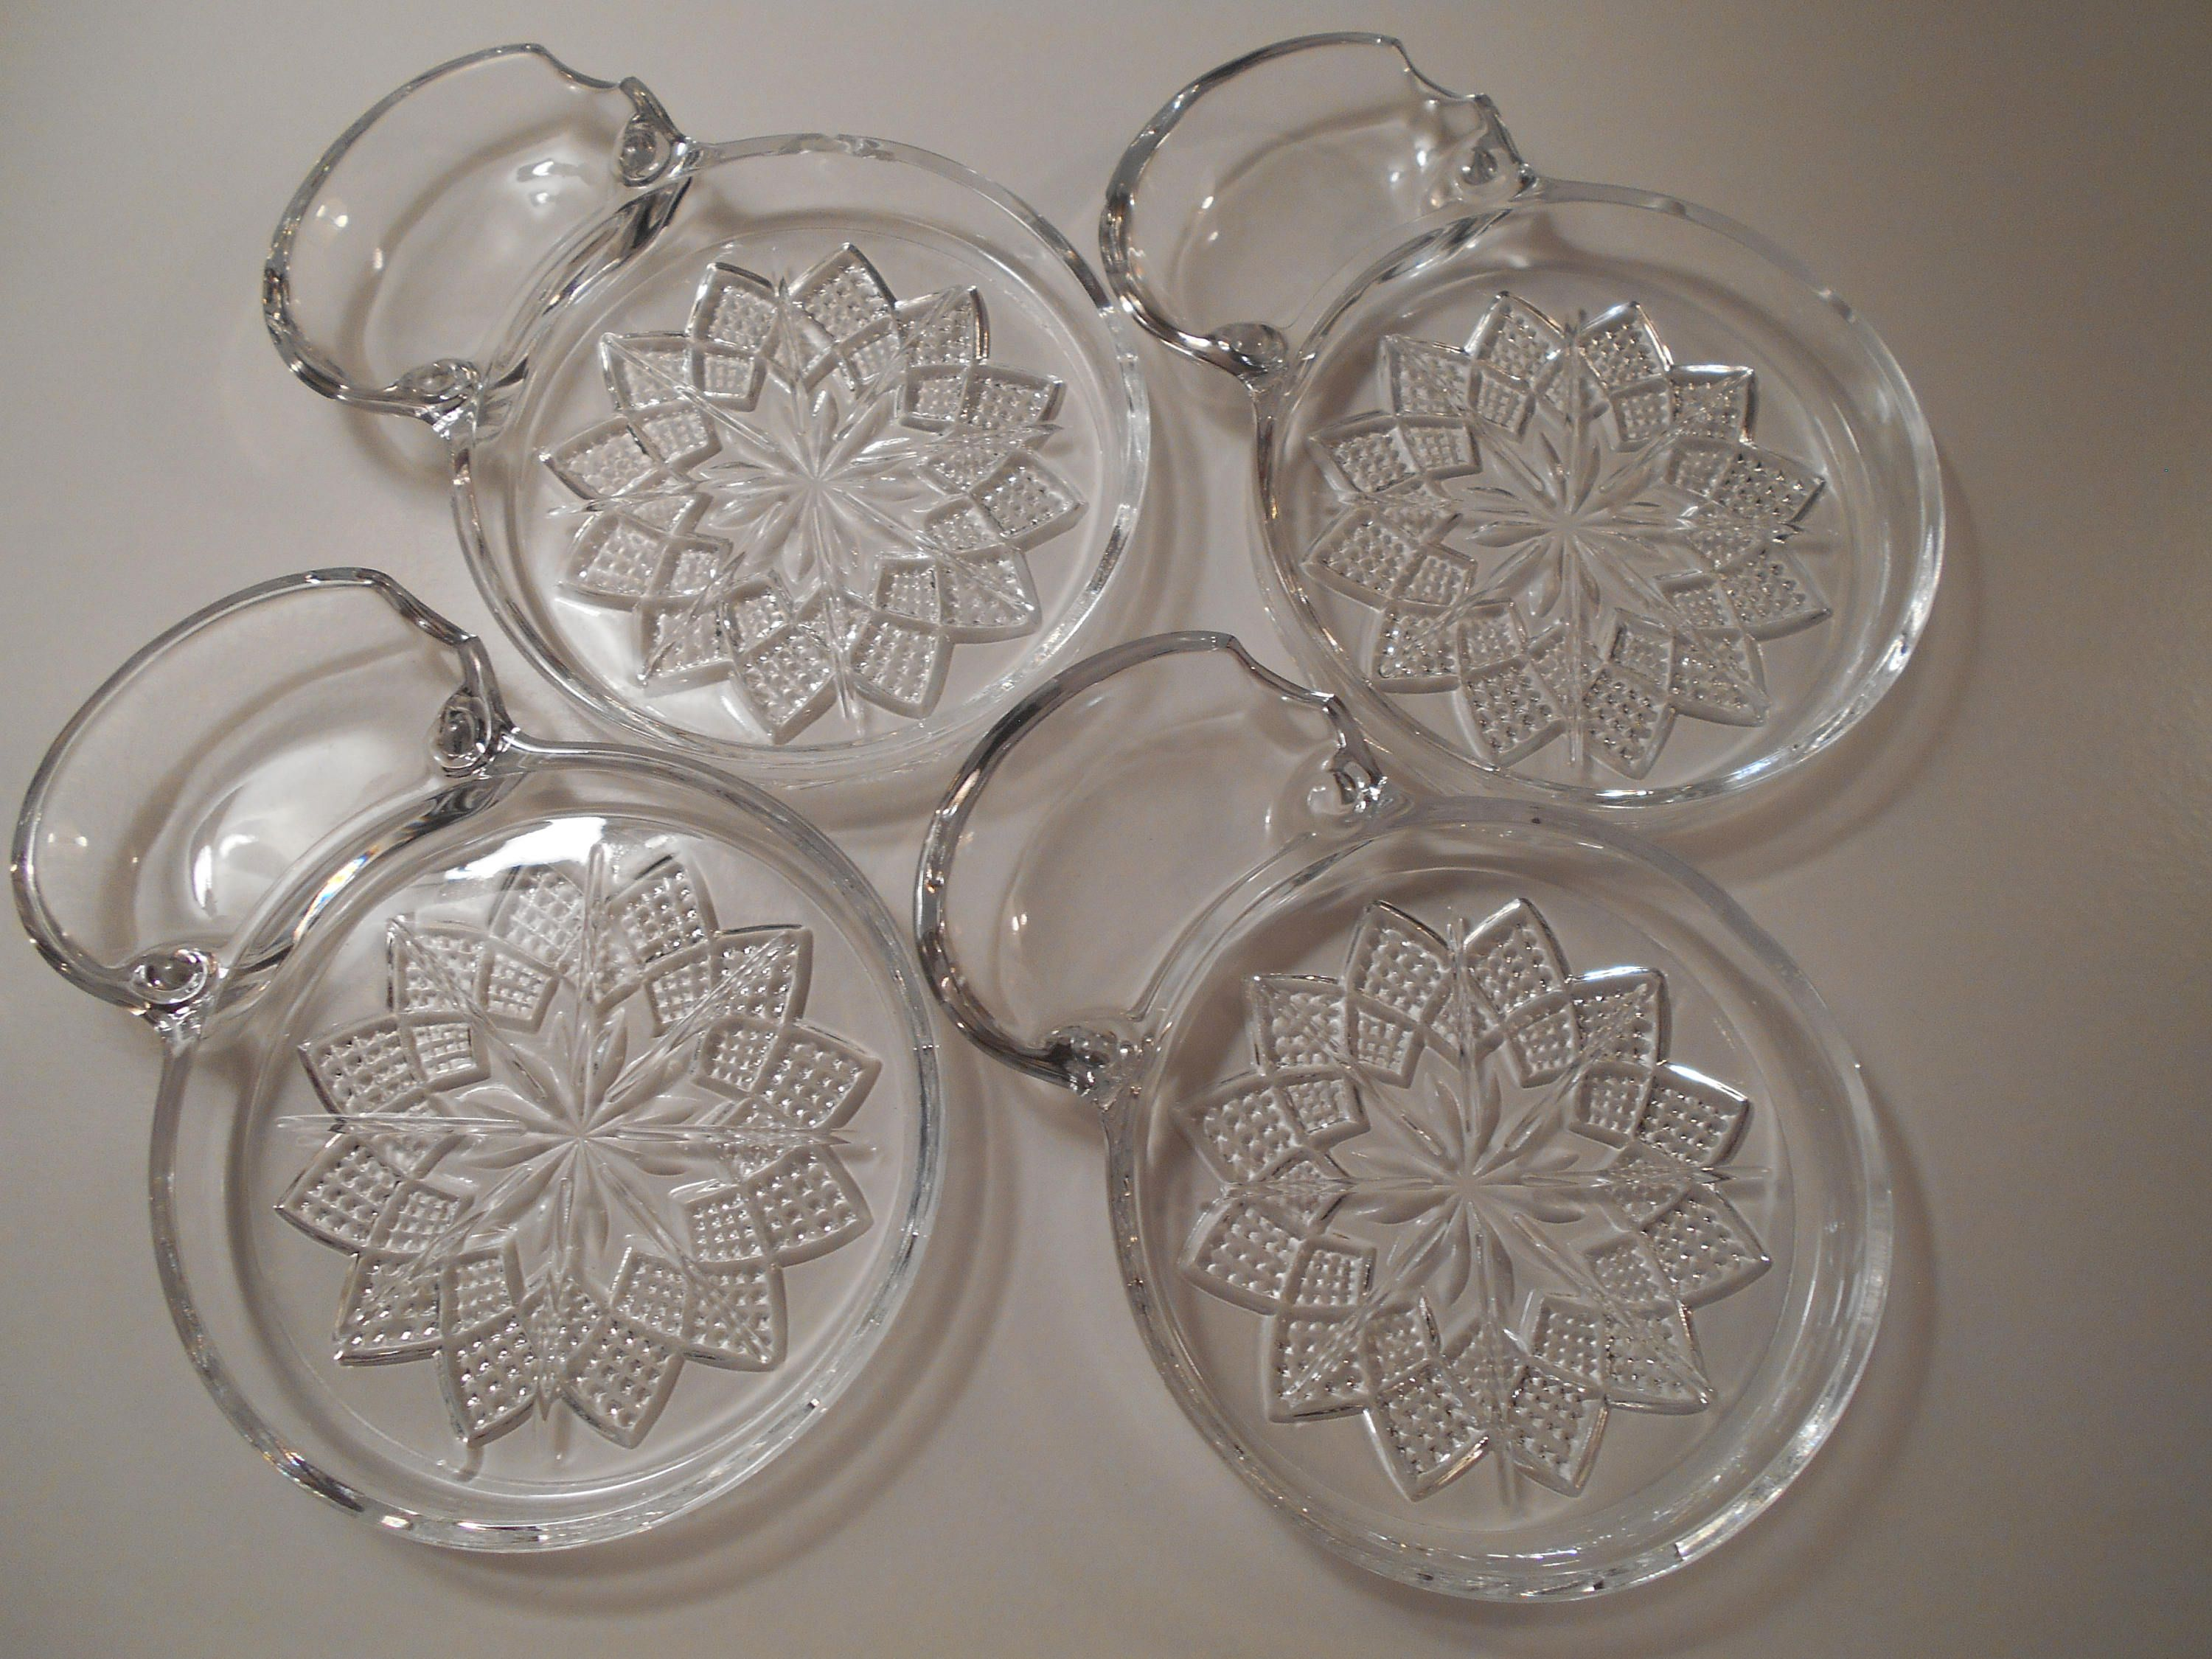 4 Vintage Pressed Glass Coasters With Spoonrest 4 Flower Glass